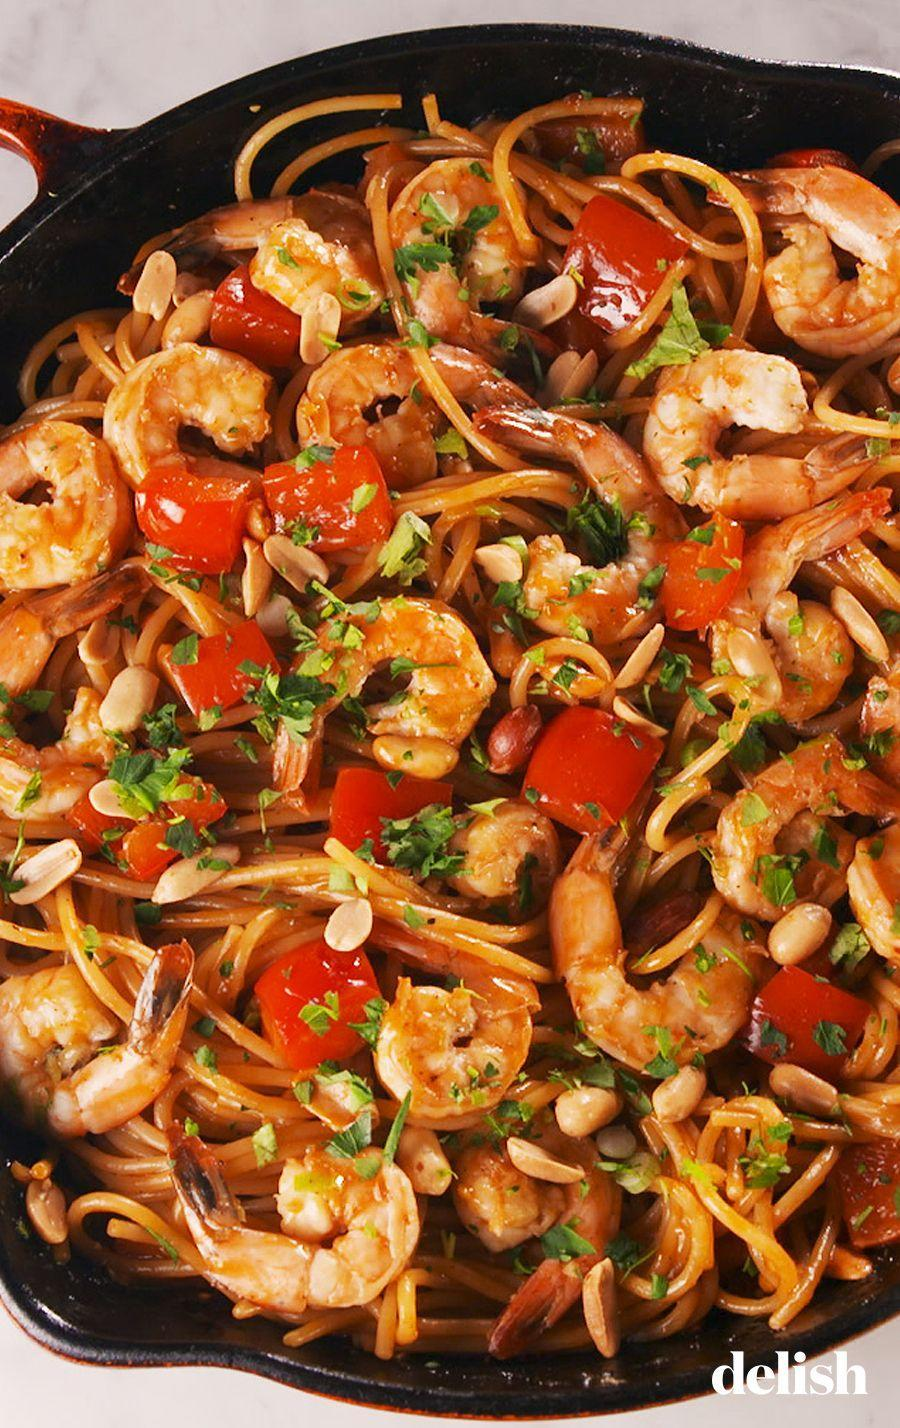 """<p>Kick things up a notch with Kung Pao Noodles.</p><p> Get the recipe from <a href=""""https://www.delish.com/cooking/recipe-ideas/a26355862/shrimp-kung-pao-noodles-recipe/"""" rel=""""nofollow noopener"""" target=""""_blank"""" data-ylk=""""slk:Delish"""" class=""""link rapid-noclick-resp"""">Delish</a>. </p>"""